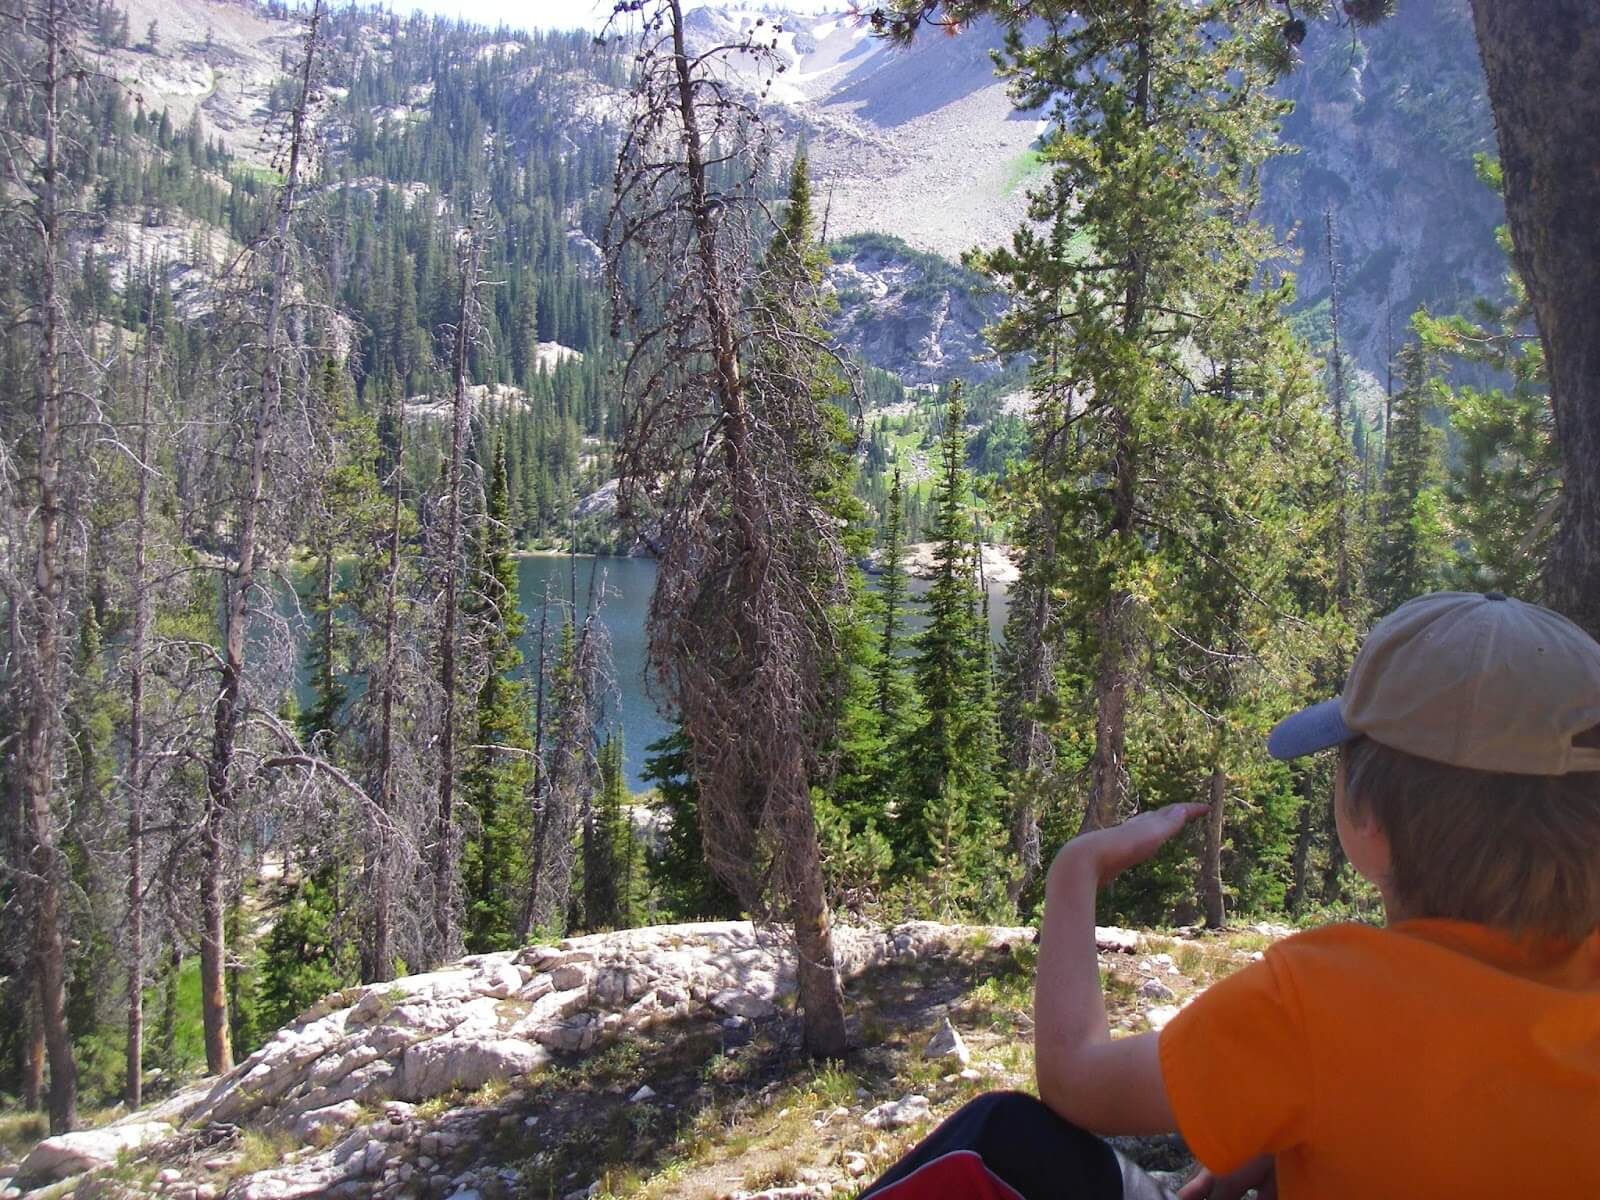 Let's go hiking! Five of my favorite kid-friendly hikes in